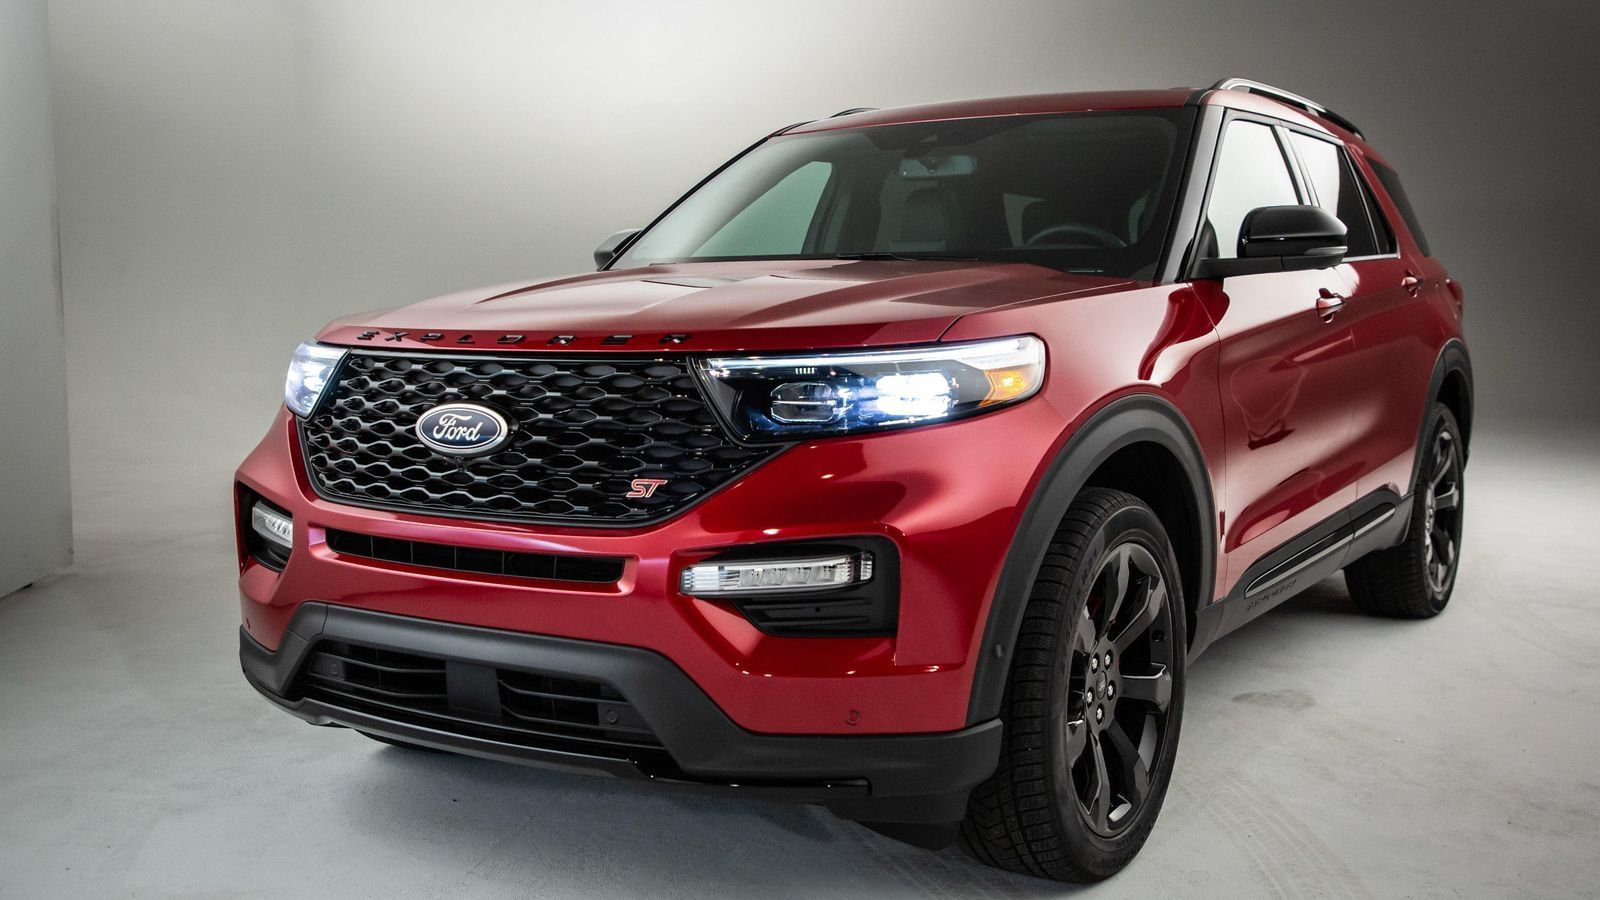 Ford Has Actually Revealed The 2020 Explorer Suv The Next Generation Of Among Its Most Popular And Crucia Ford Explorer Sport 2020 Ford Explorer Ford Explorer